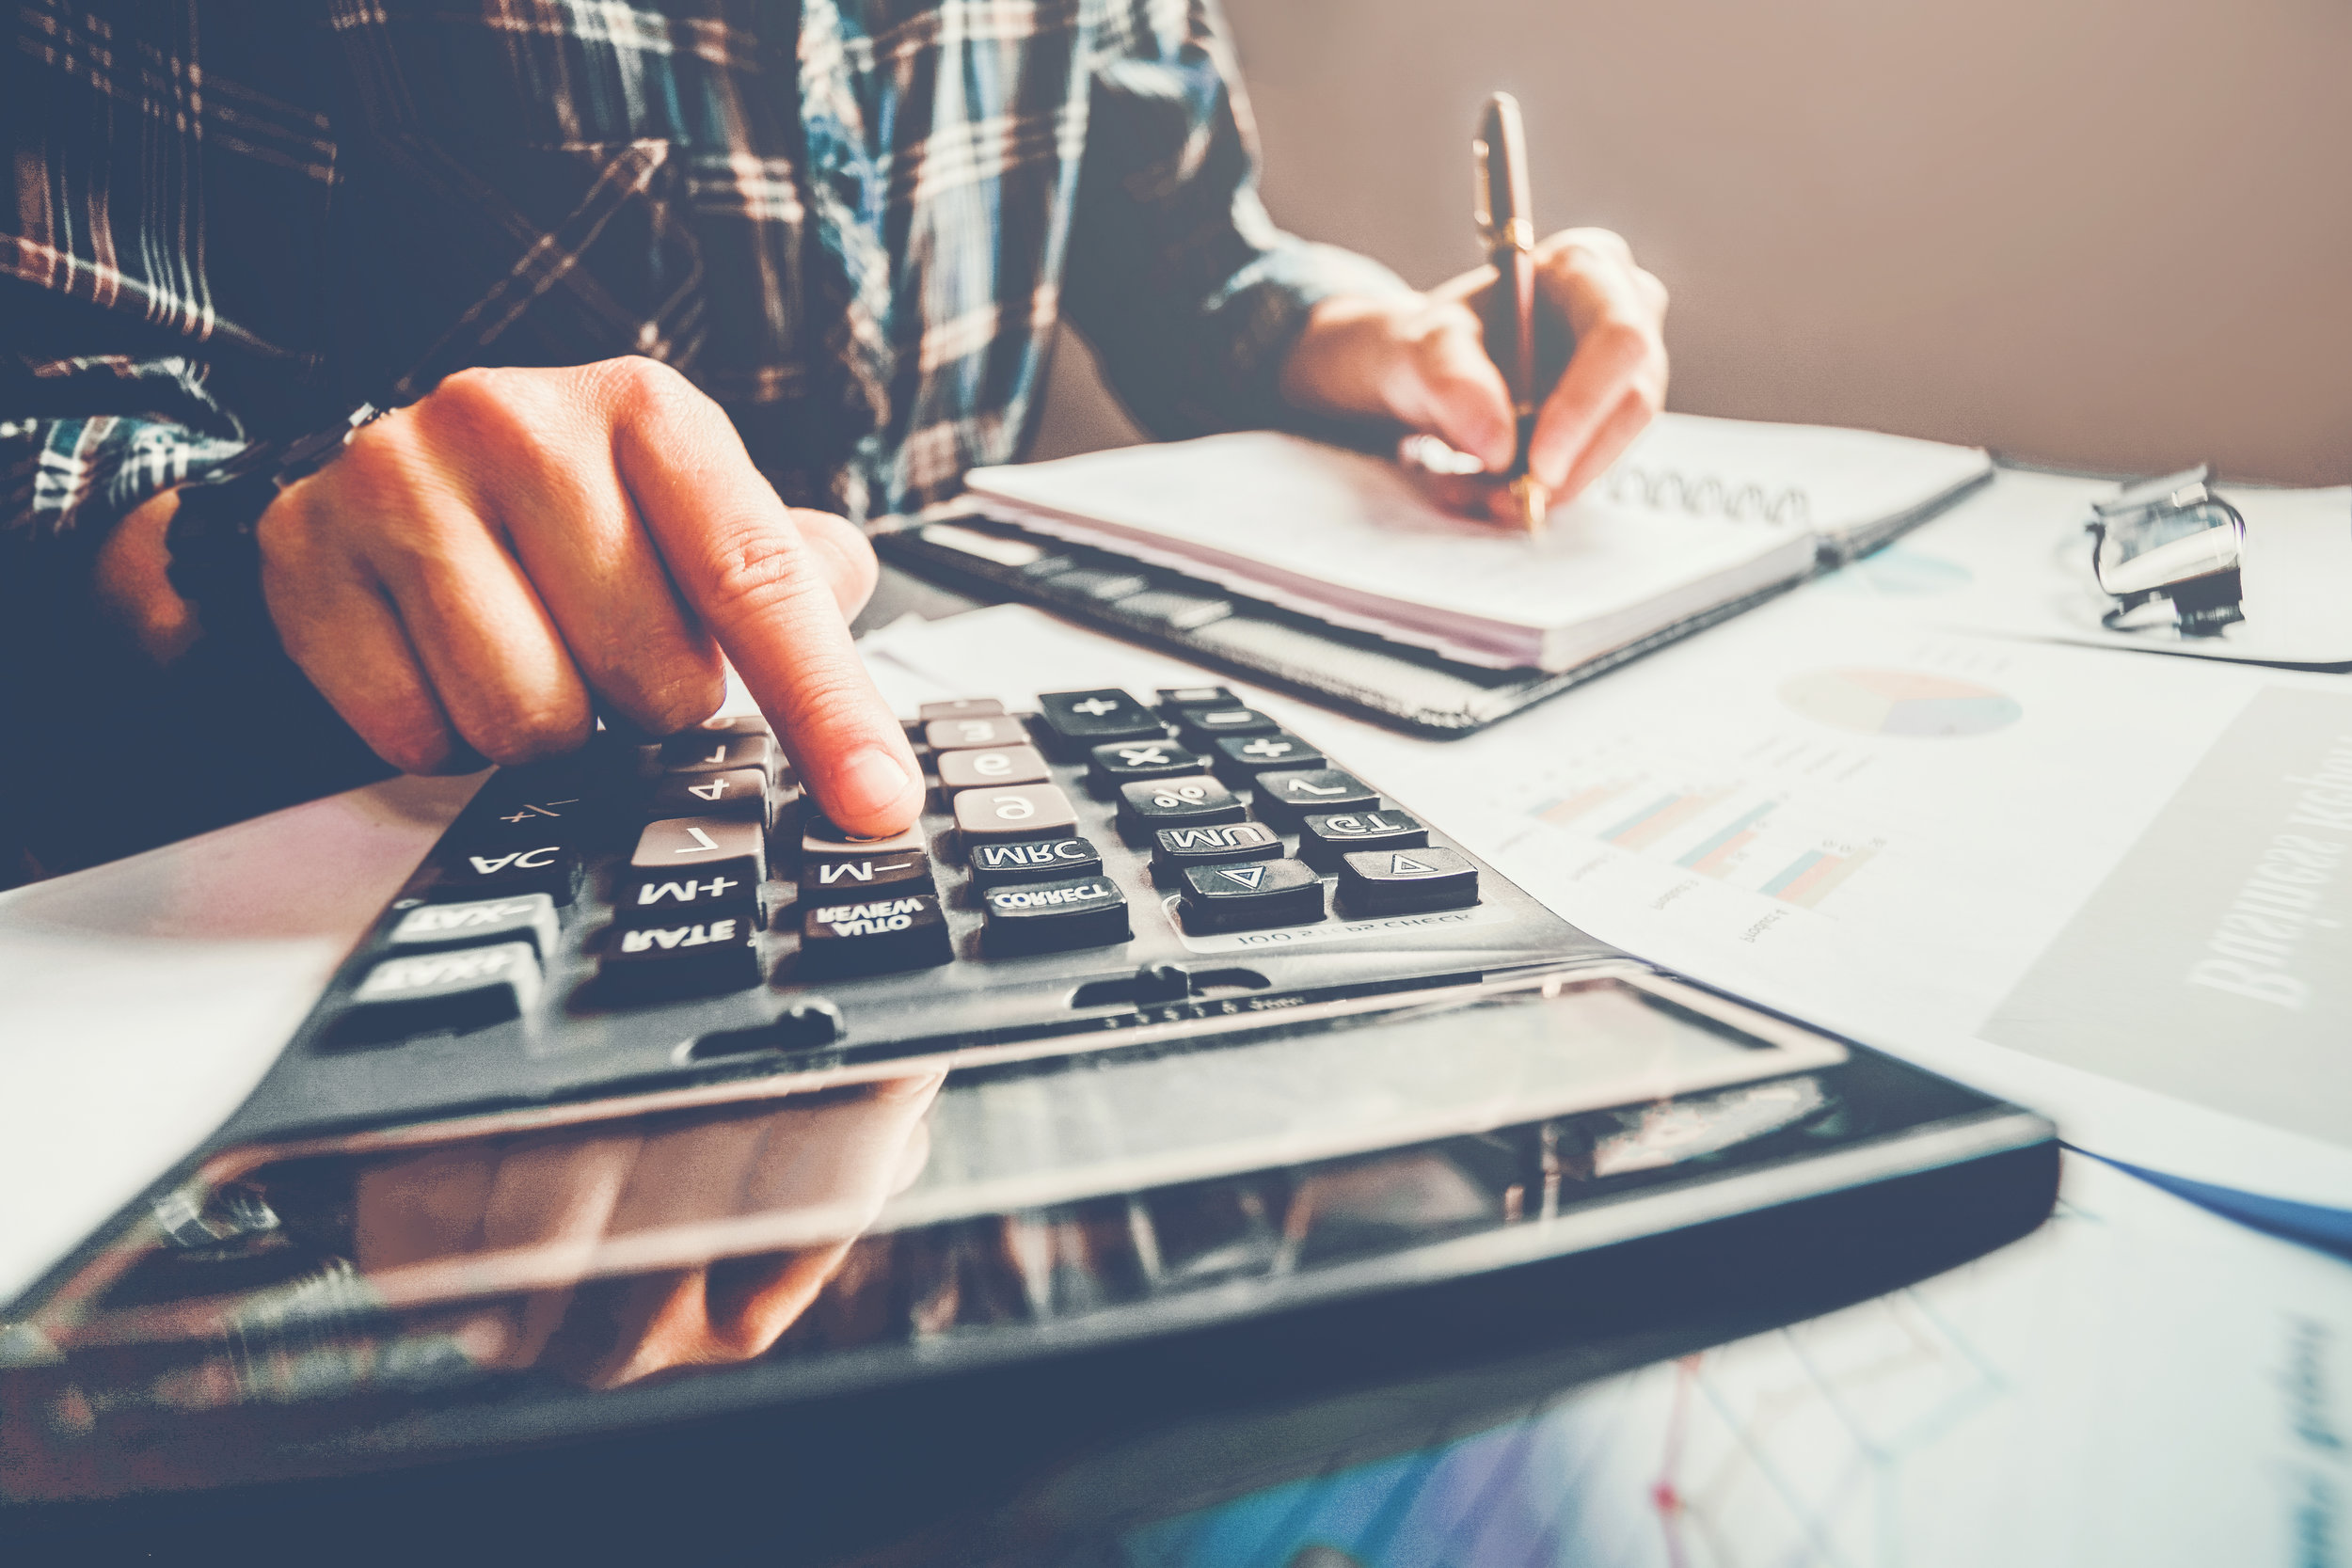 Are you liable for IHT? - Inheritance Tax (IHT) applies to everyone. If you have assets (including your family home) over £325k (£650k for married couples) you're liable.